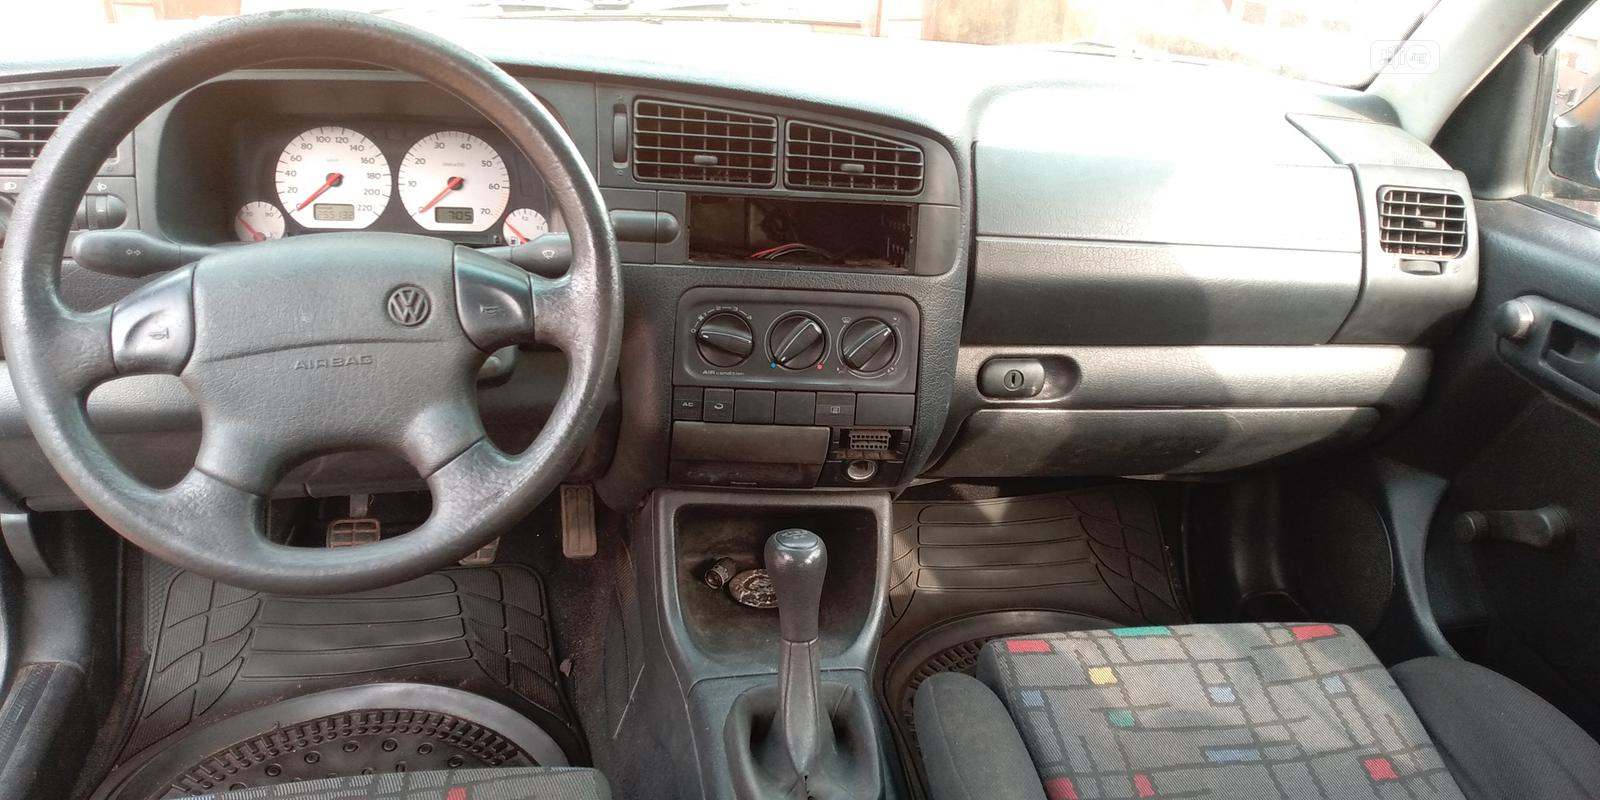 Volkswagen Golf 1998 Black   Cars for sale in Onitsha, Anambra State, Nigeria